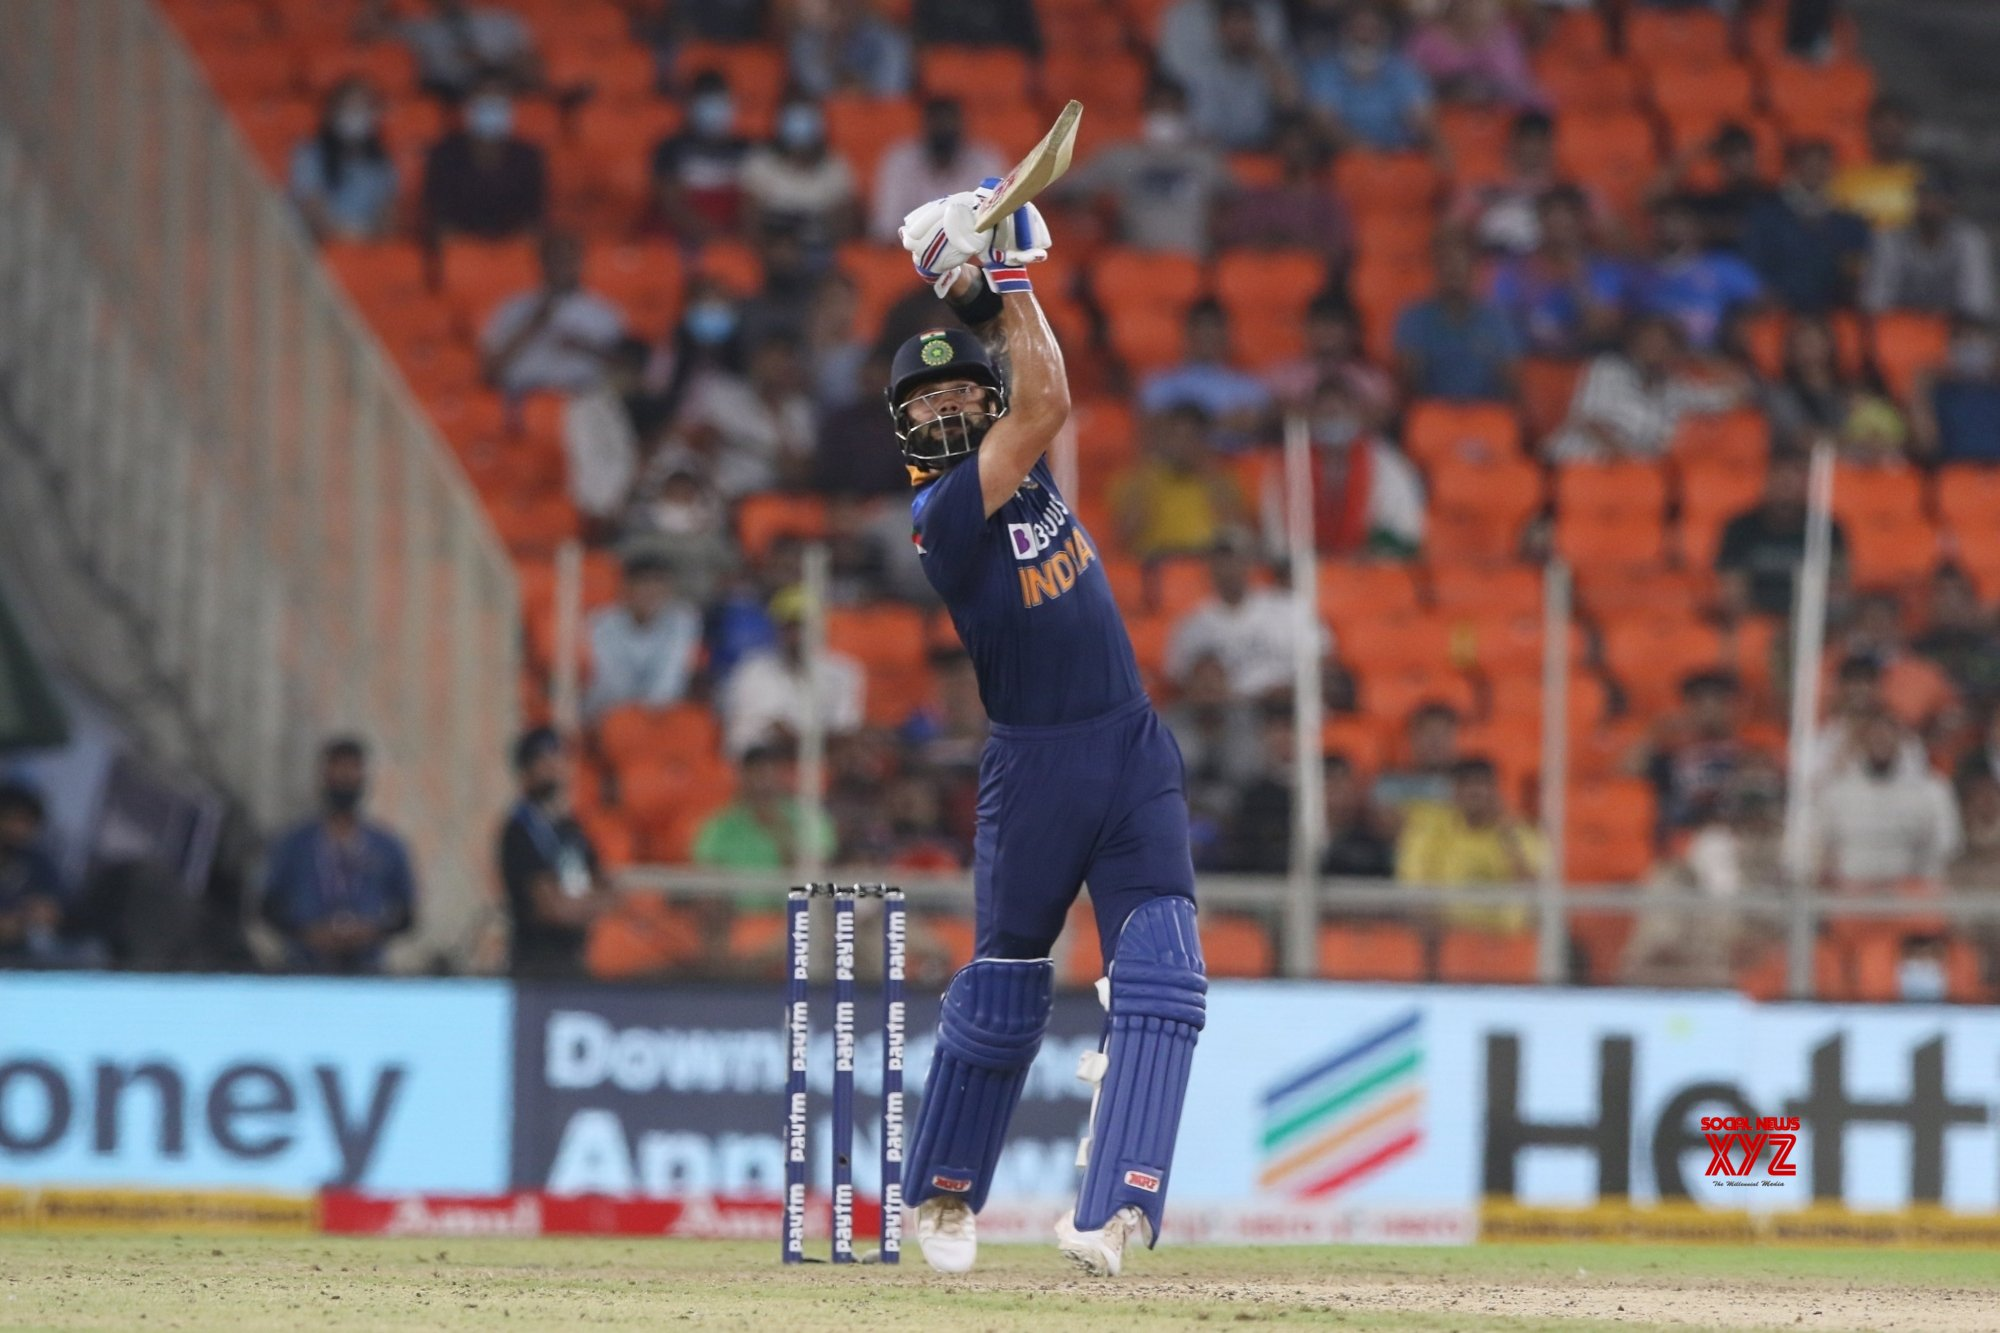 England done and dusted, now the IPL